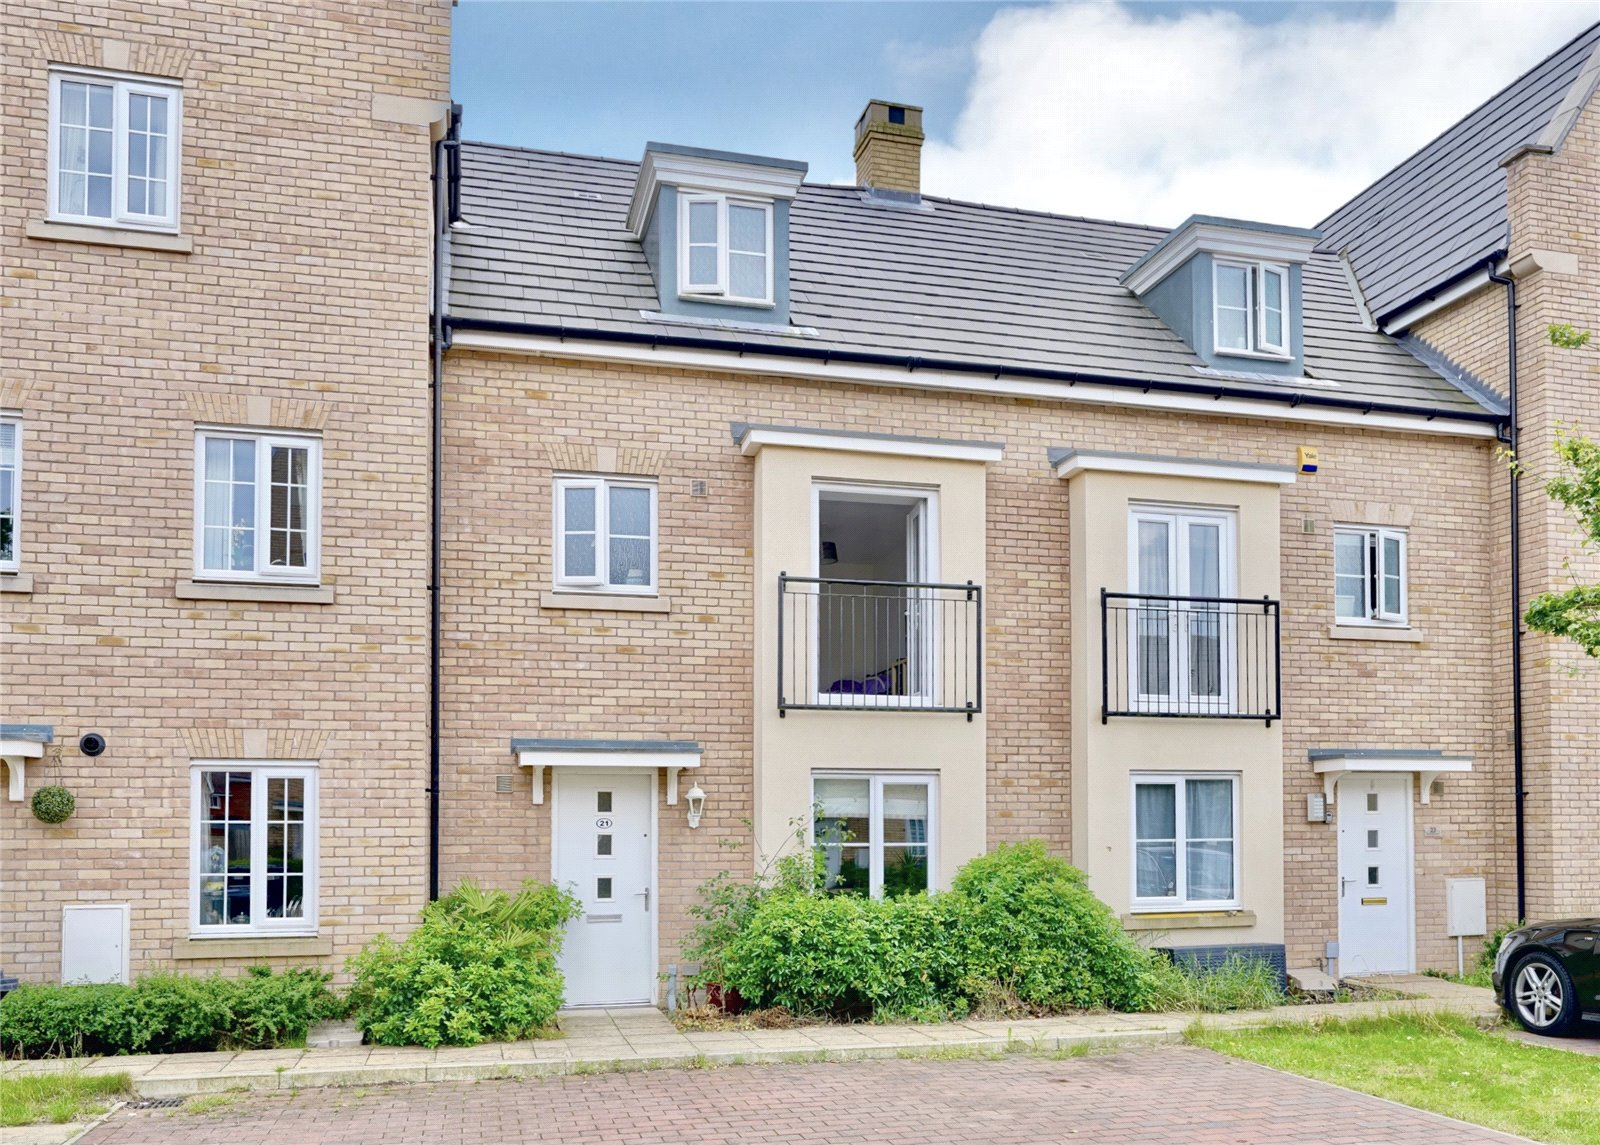 4 bed house for sale in Buttercup Avenue, Eynesbury, PE19